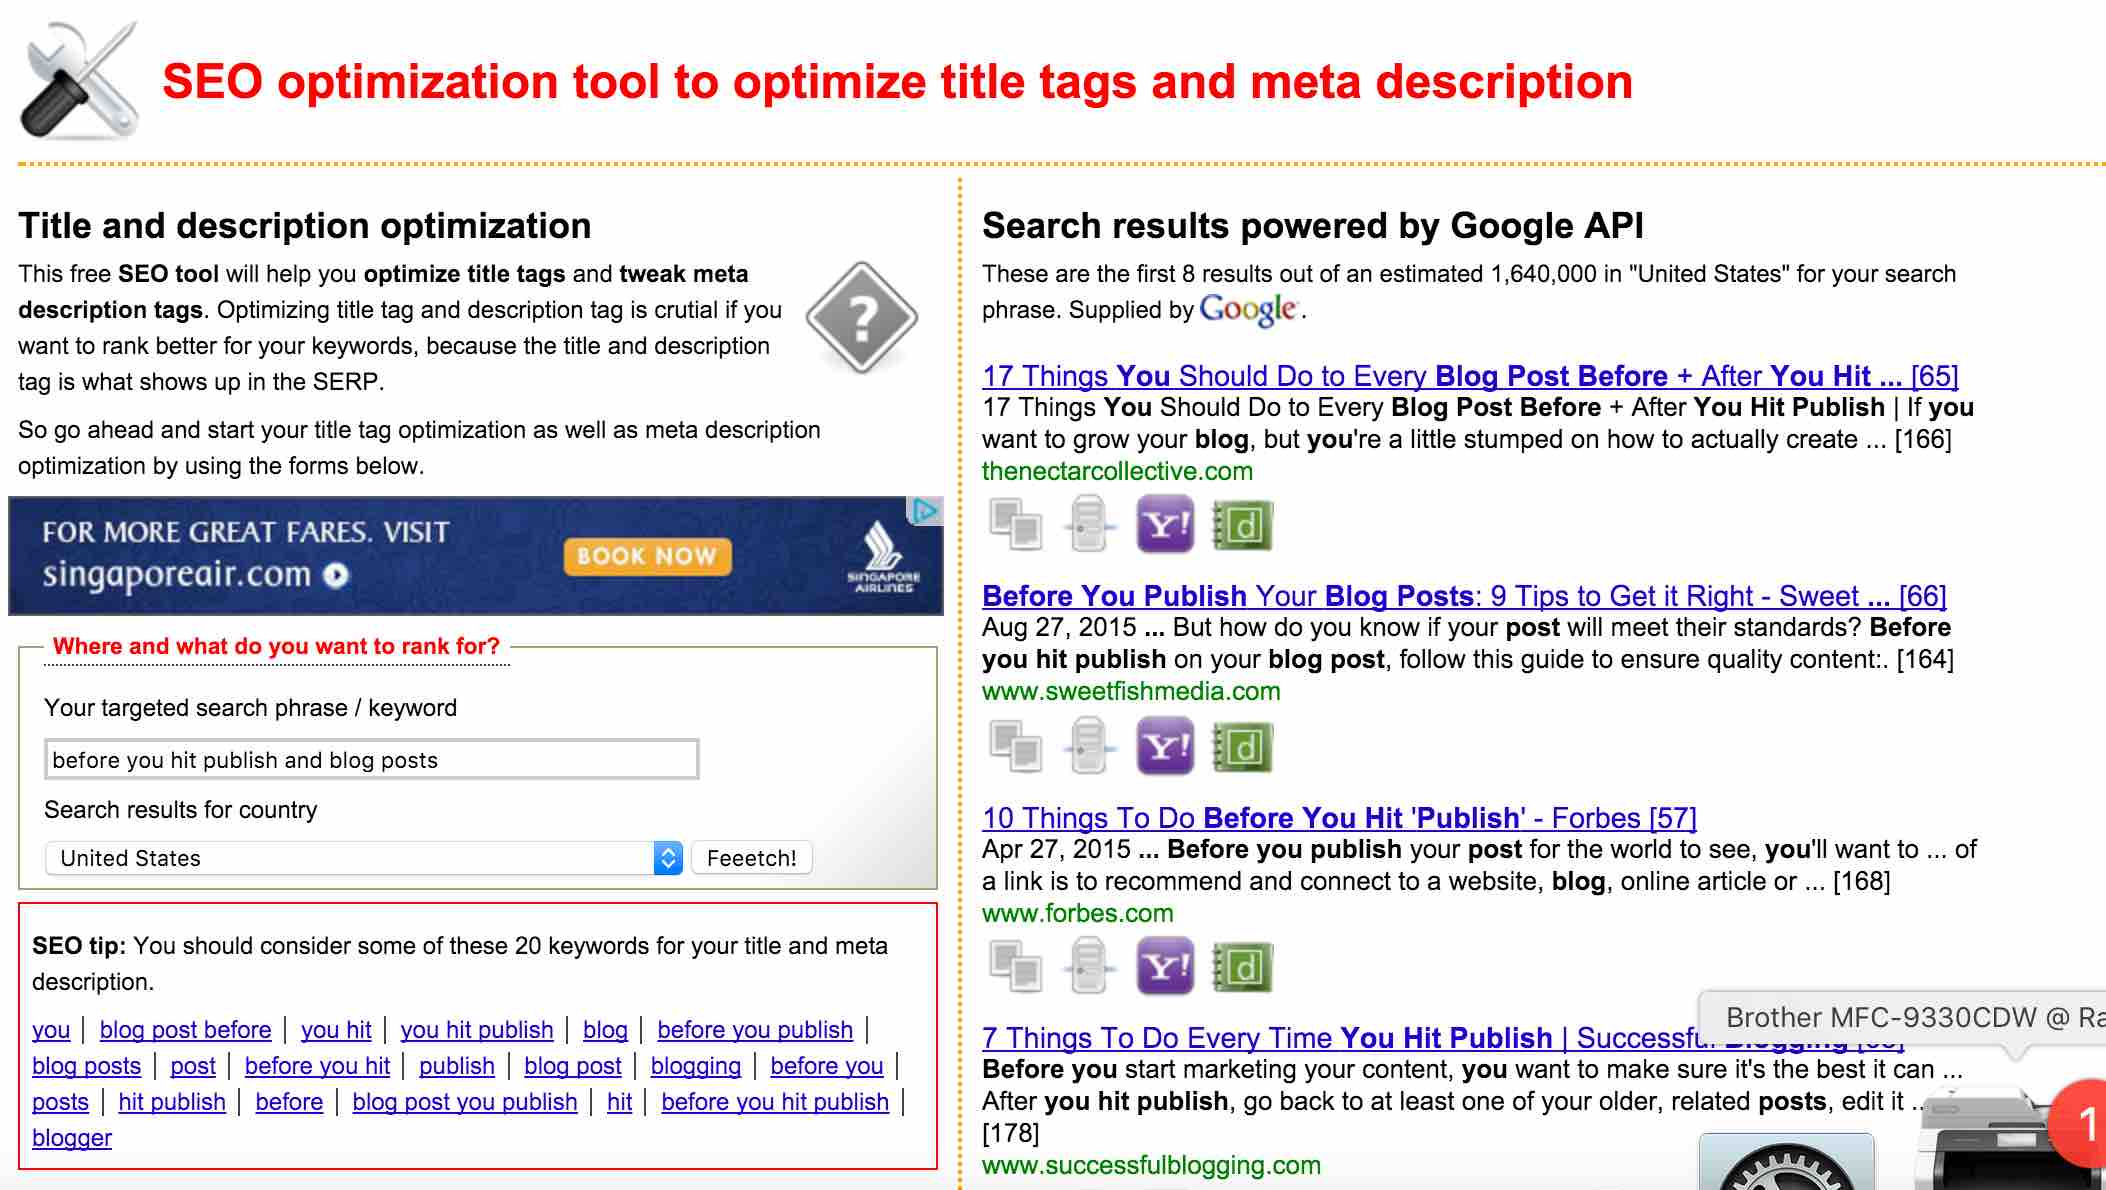 How to Write Outstanding Blog Posts that Google and Your